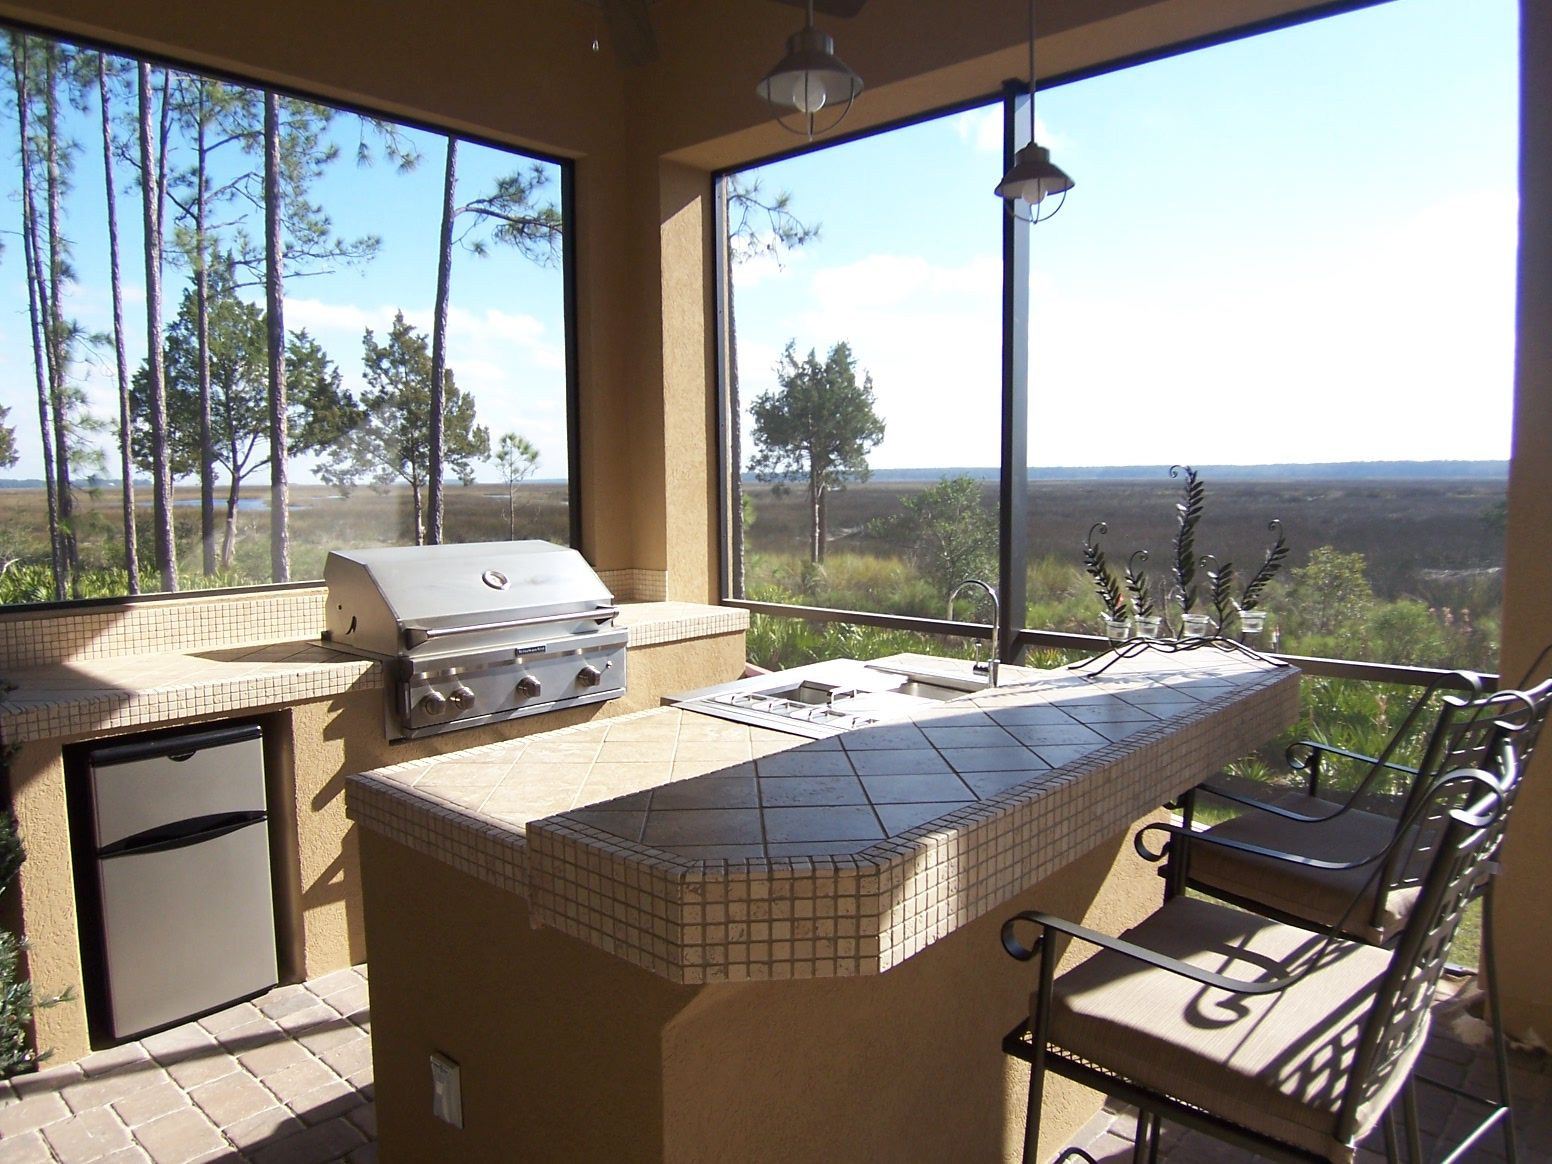 Outdoor kitchen bar area site built covered in stucco for Outdoor kitchen grill insert